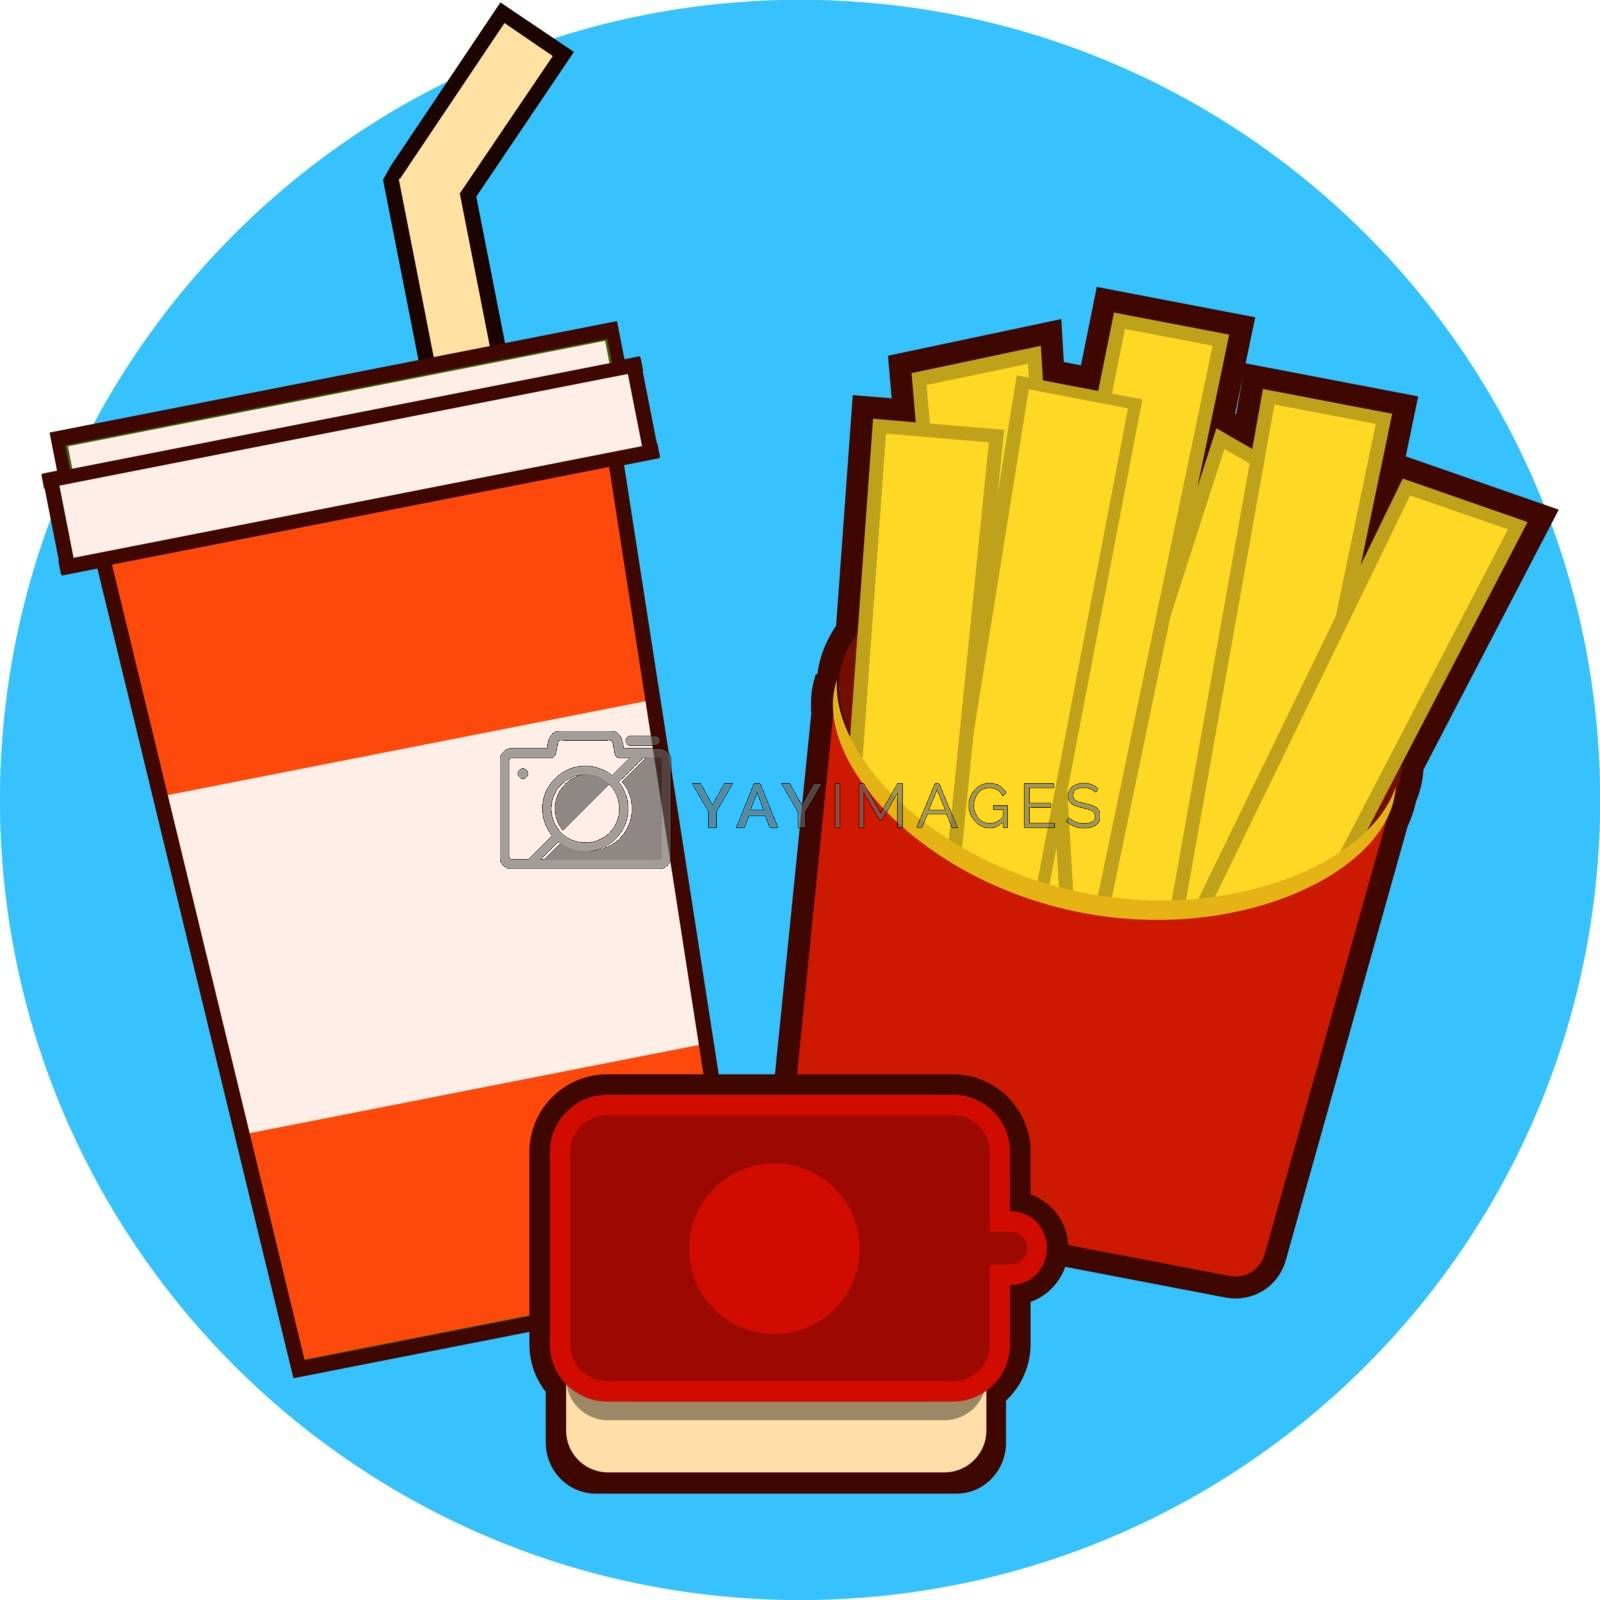 Fast food combo icon with french fries and soda on a blue background vector illustration EPS